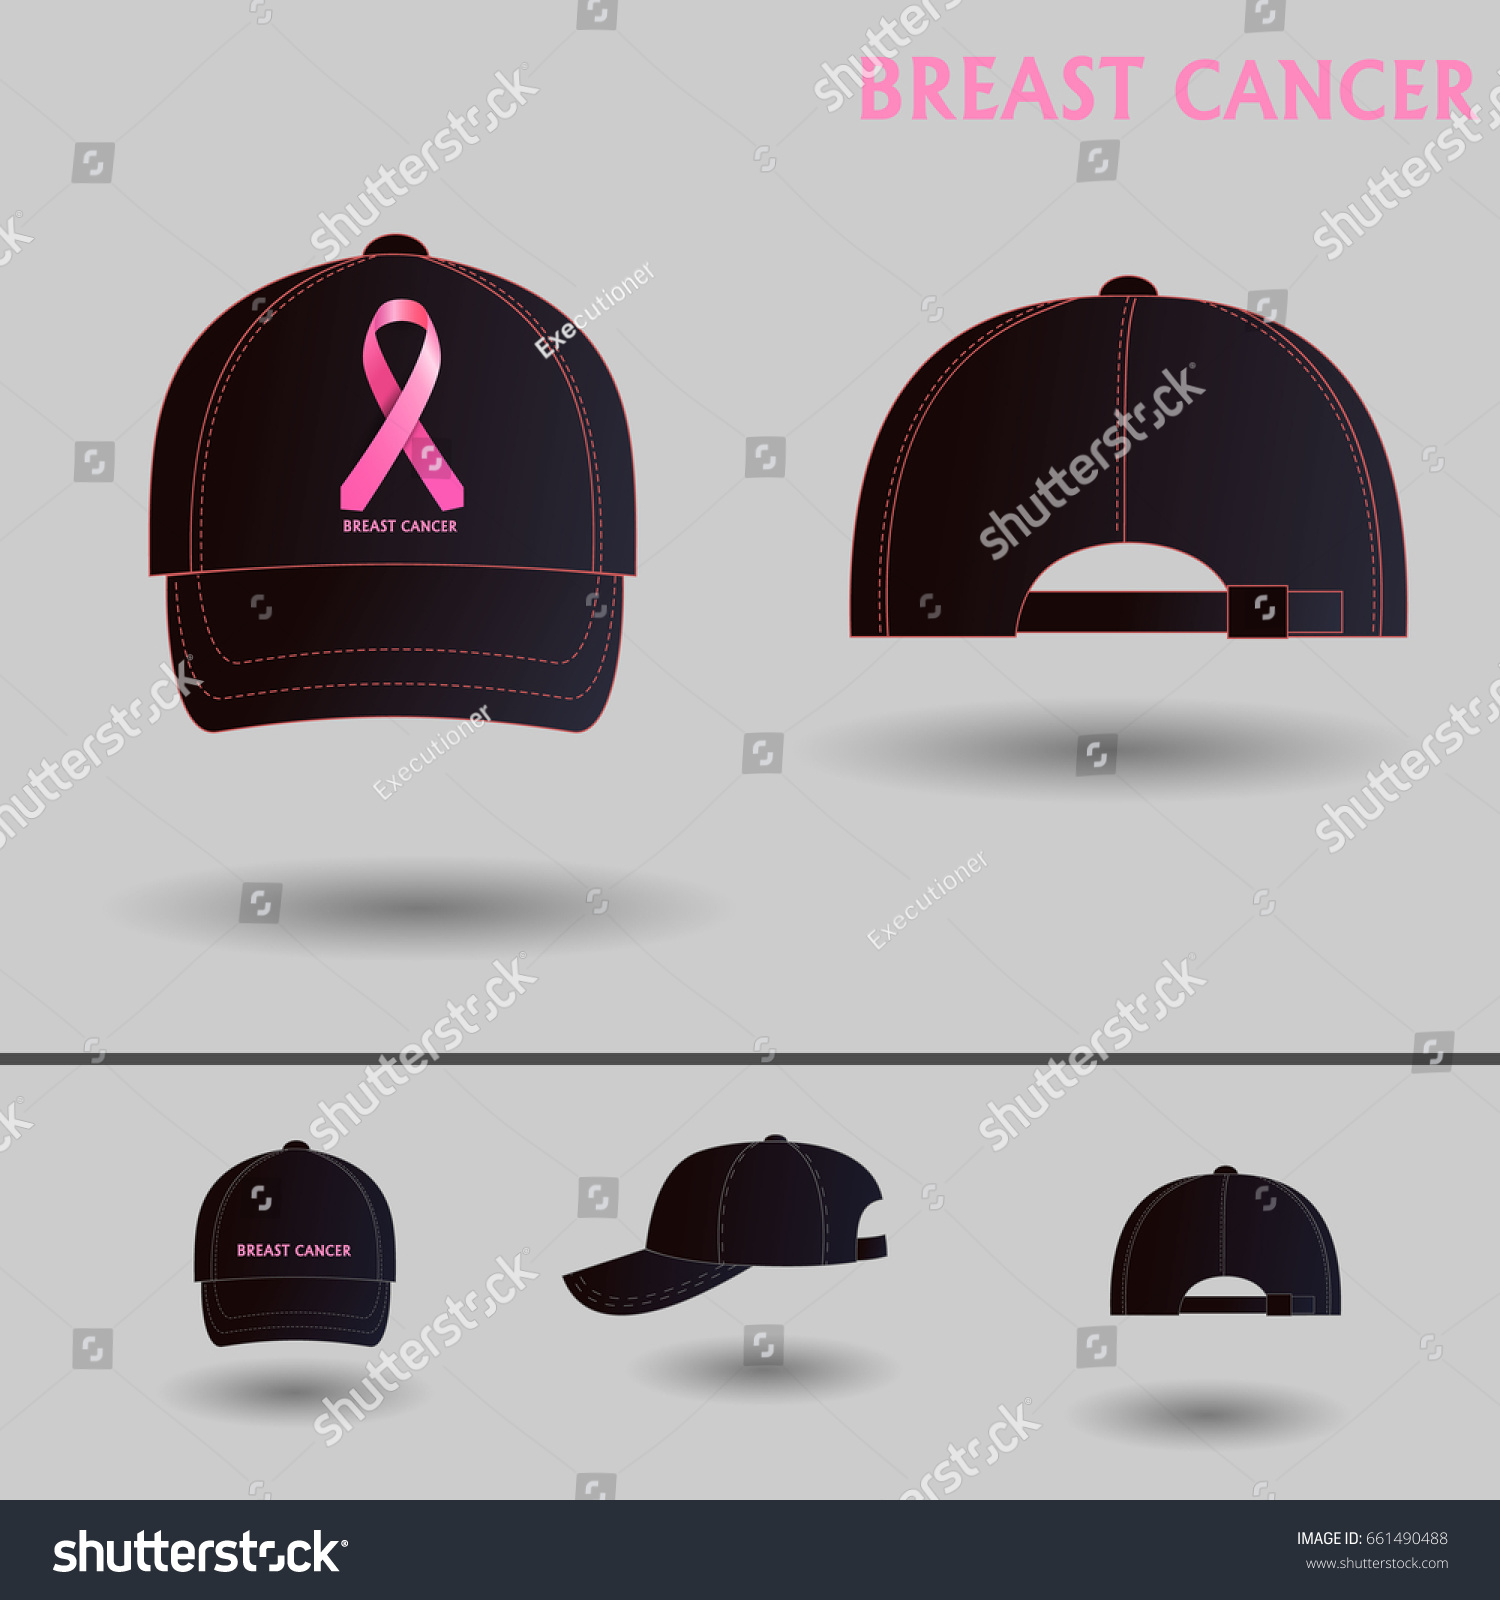 b950cb3bf7f48 caps with awareness ribbons. Ball cap breast cancer. Vector icons for  video